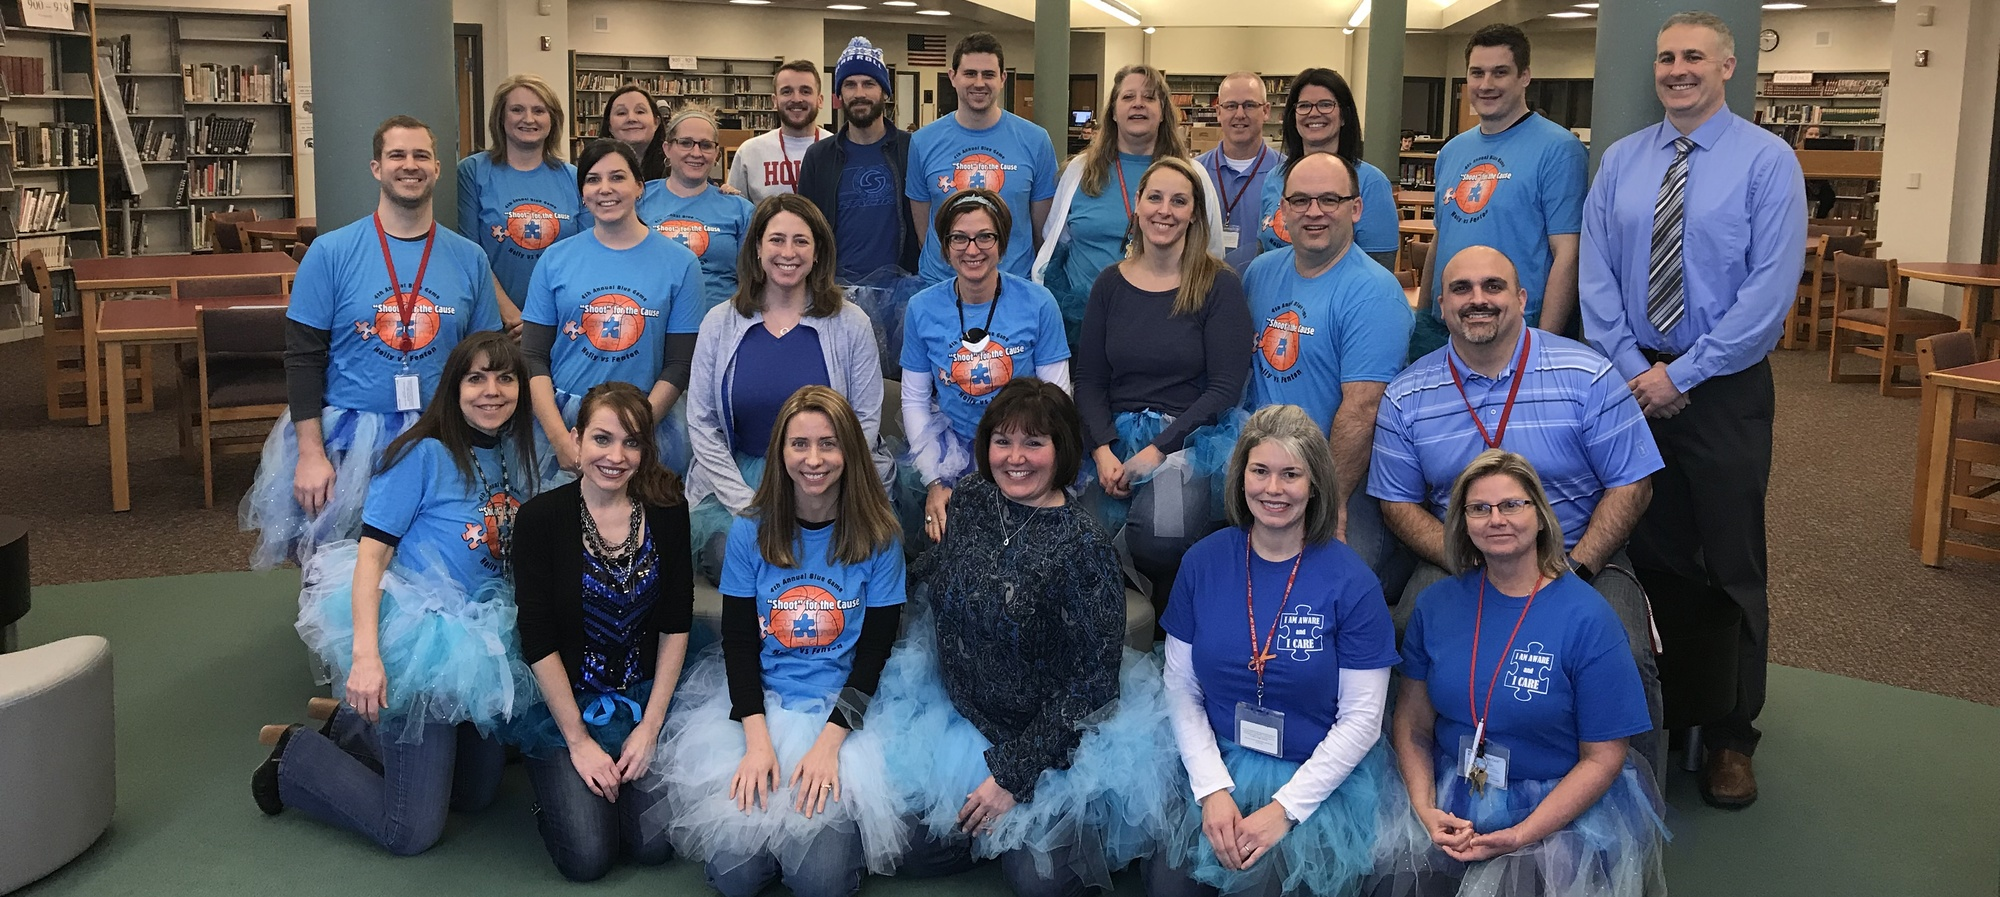 HHS staff supporting Autism Awareness wearing their blue shirts and blue tutus